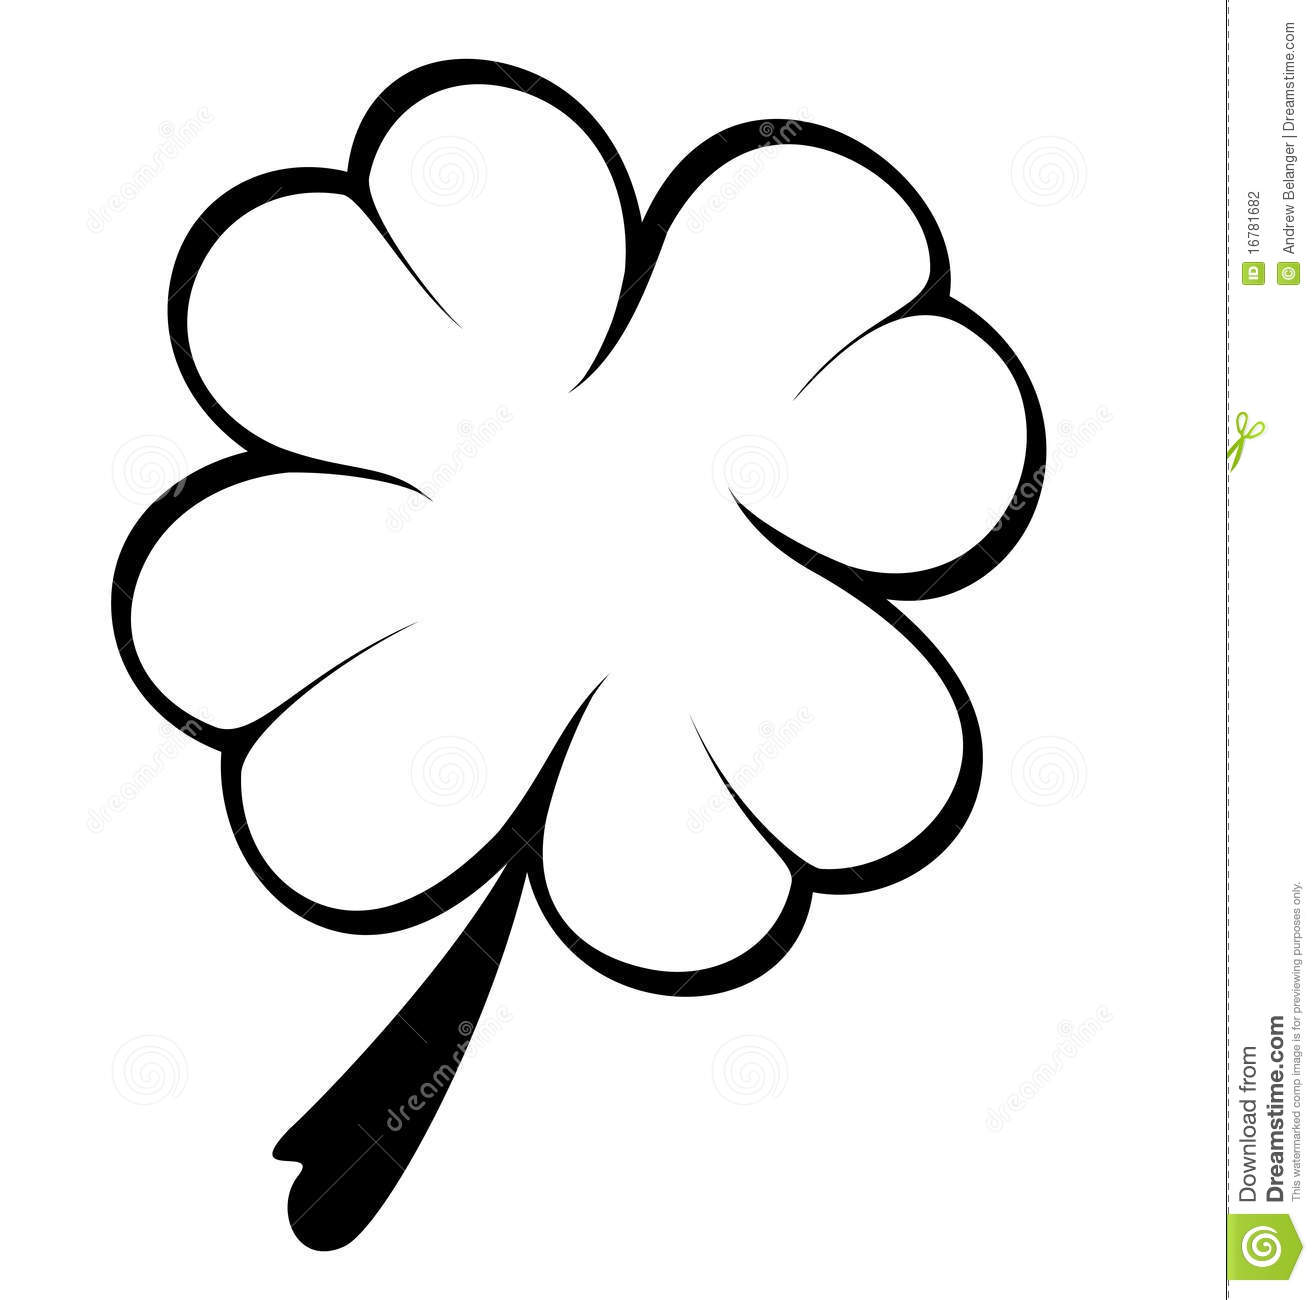 Black And White Four Leaf Clover Stock Vector